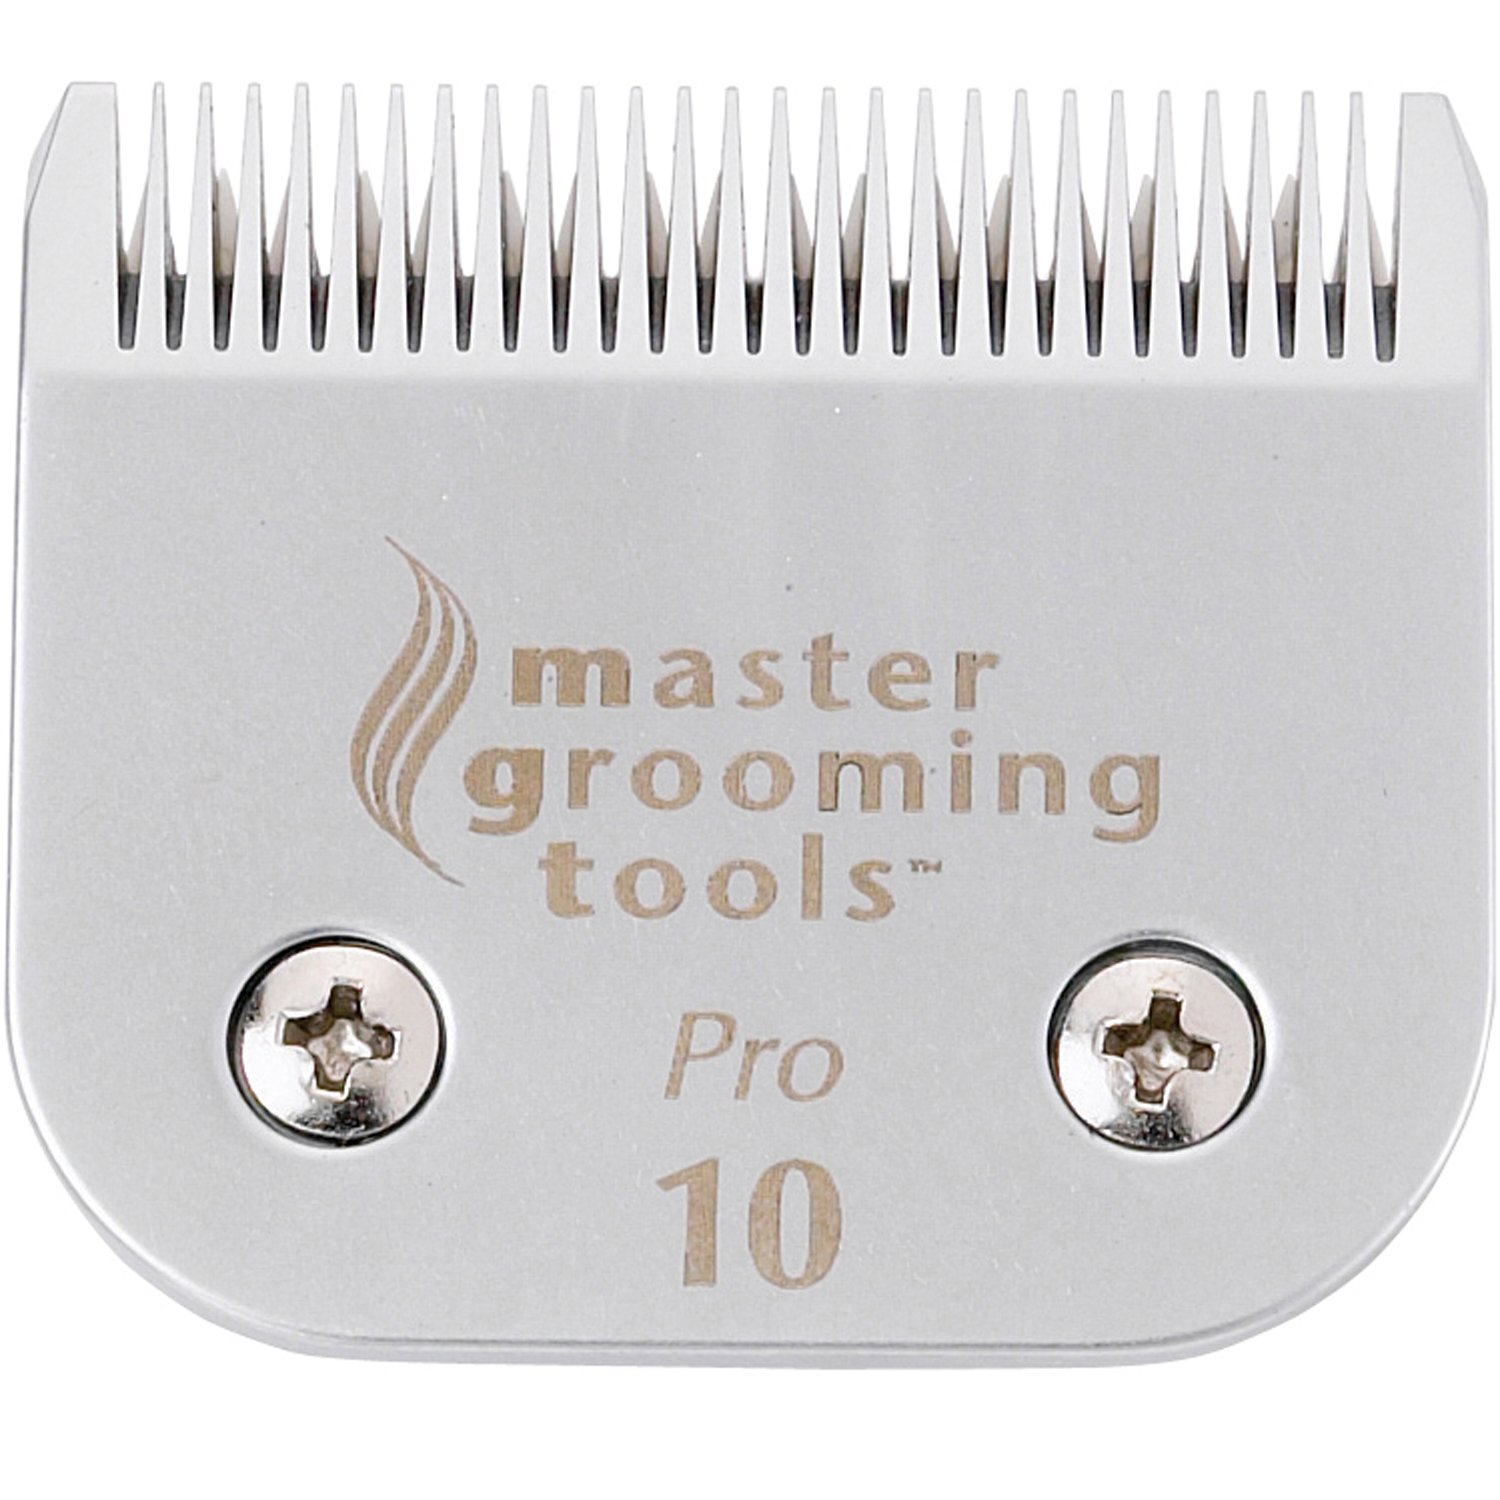 10 Blade Master Grooming Tools Ceramic Blades — Heat-Resistant Detachable Blades for A5-Style Dog-Grooming Clippers, 10